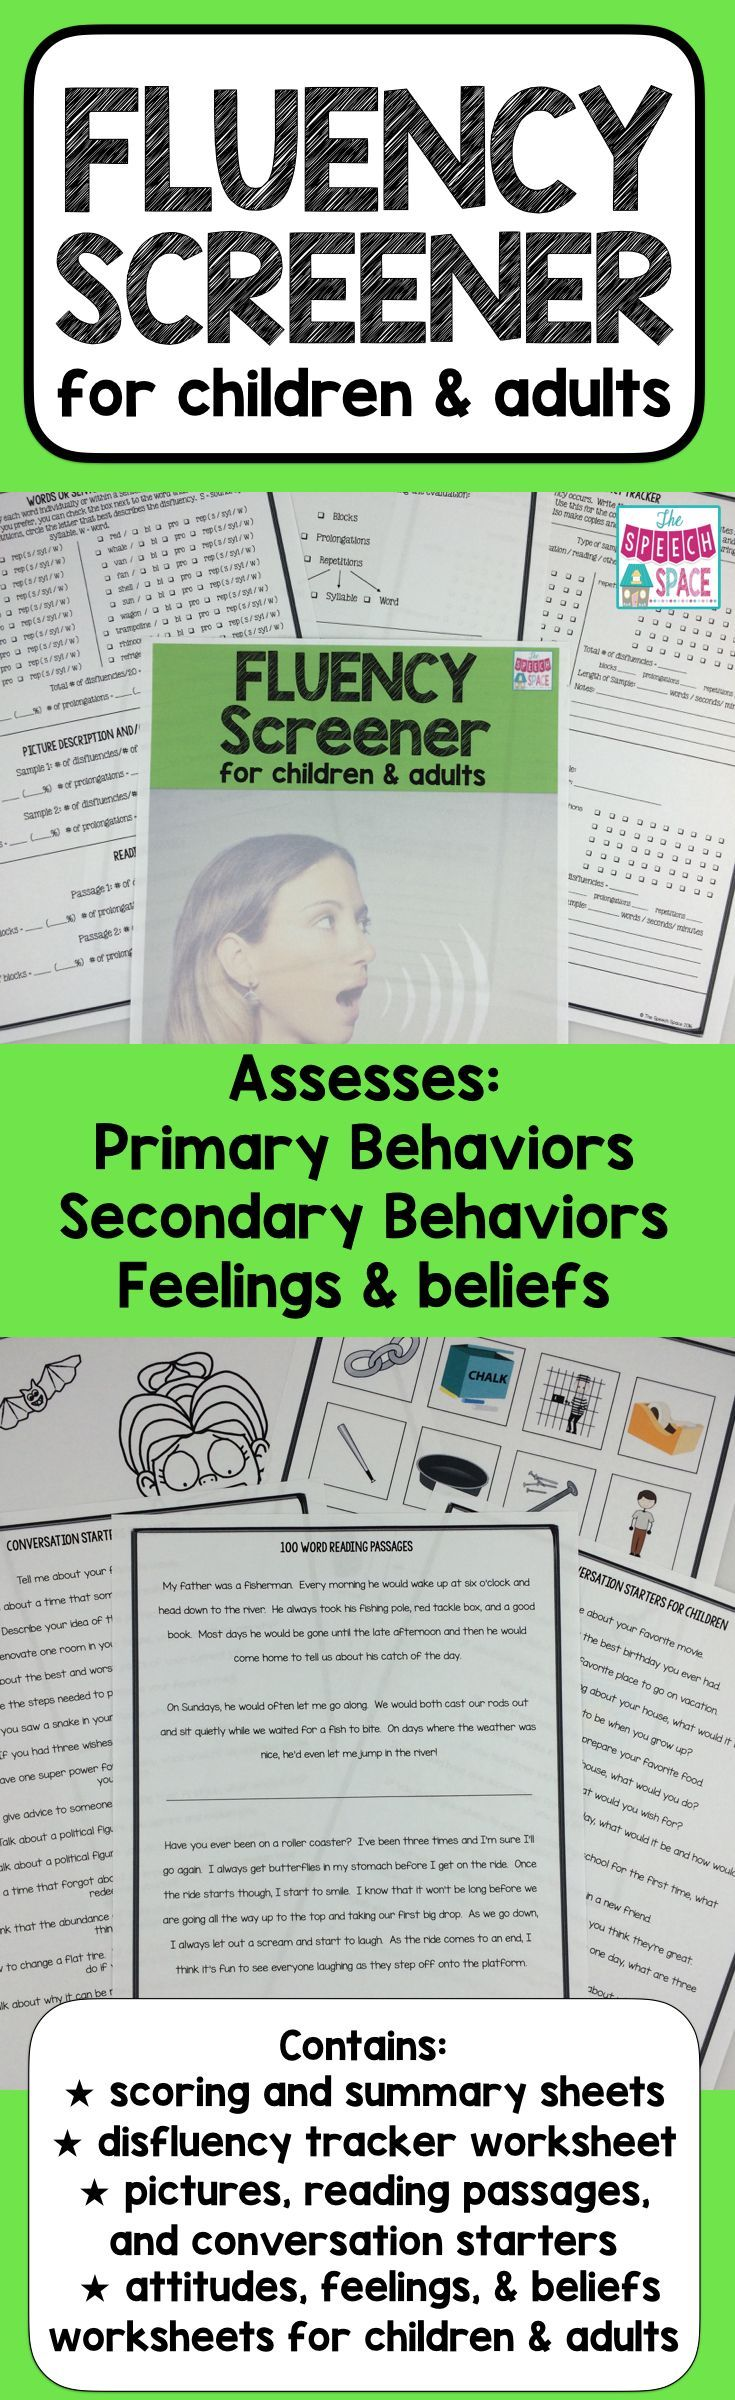 Now You Have Access to the Best Free Speech Therapy Apps & Resources!